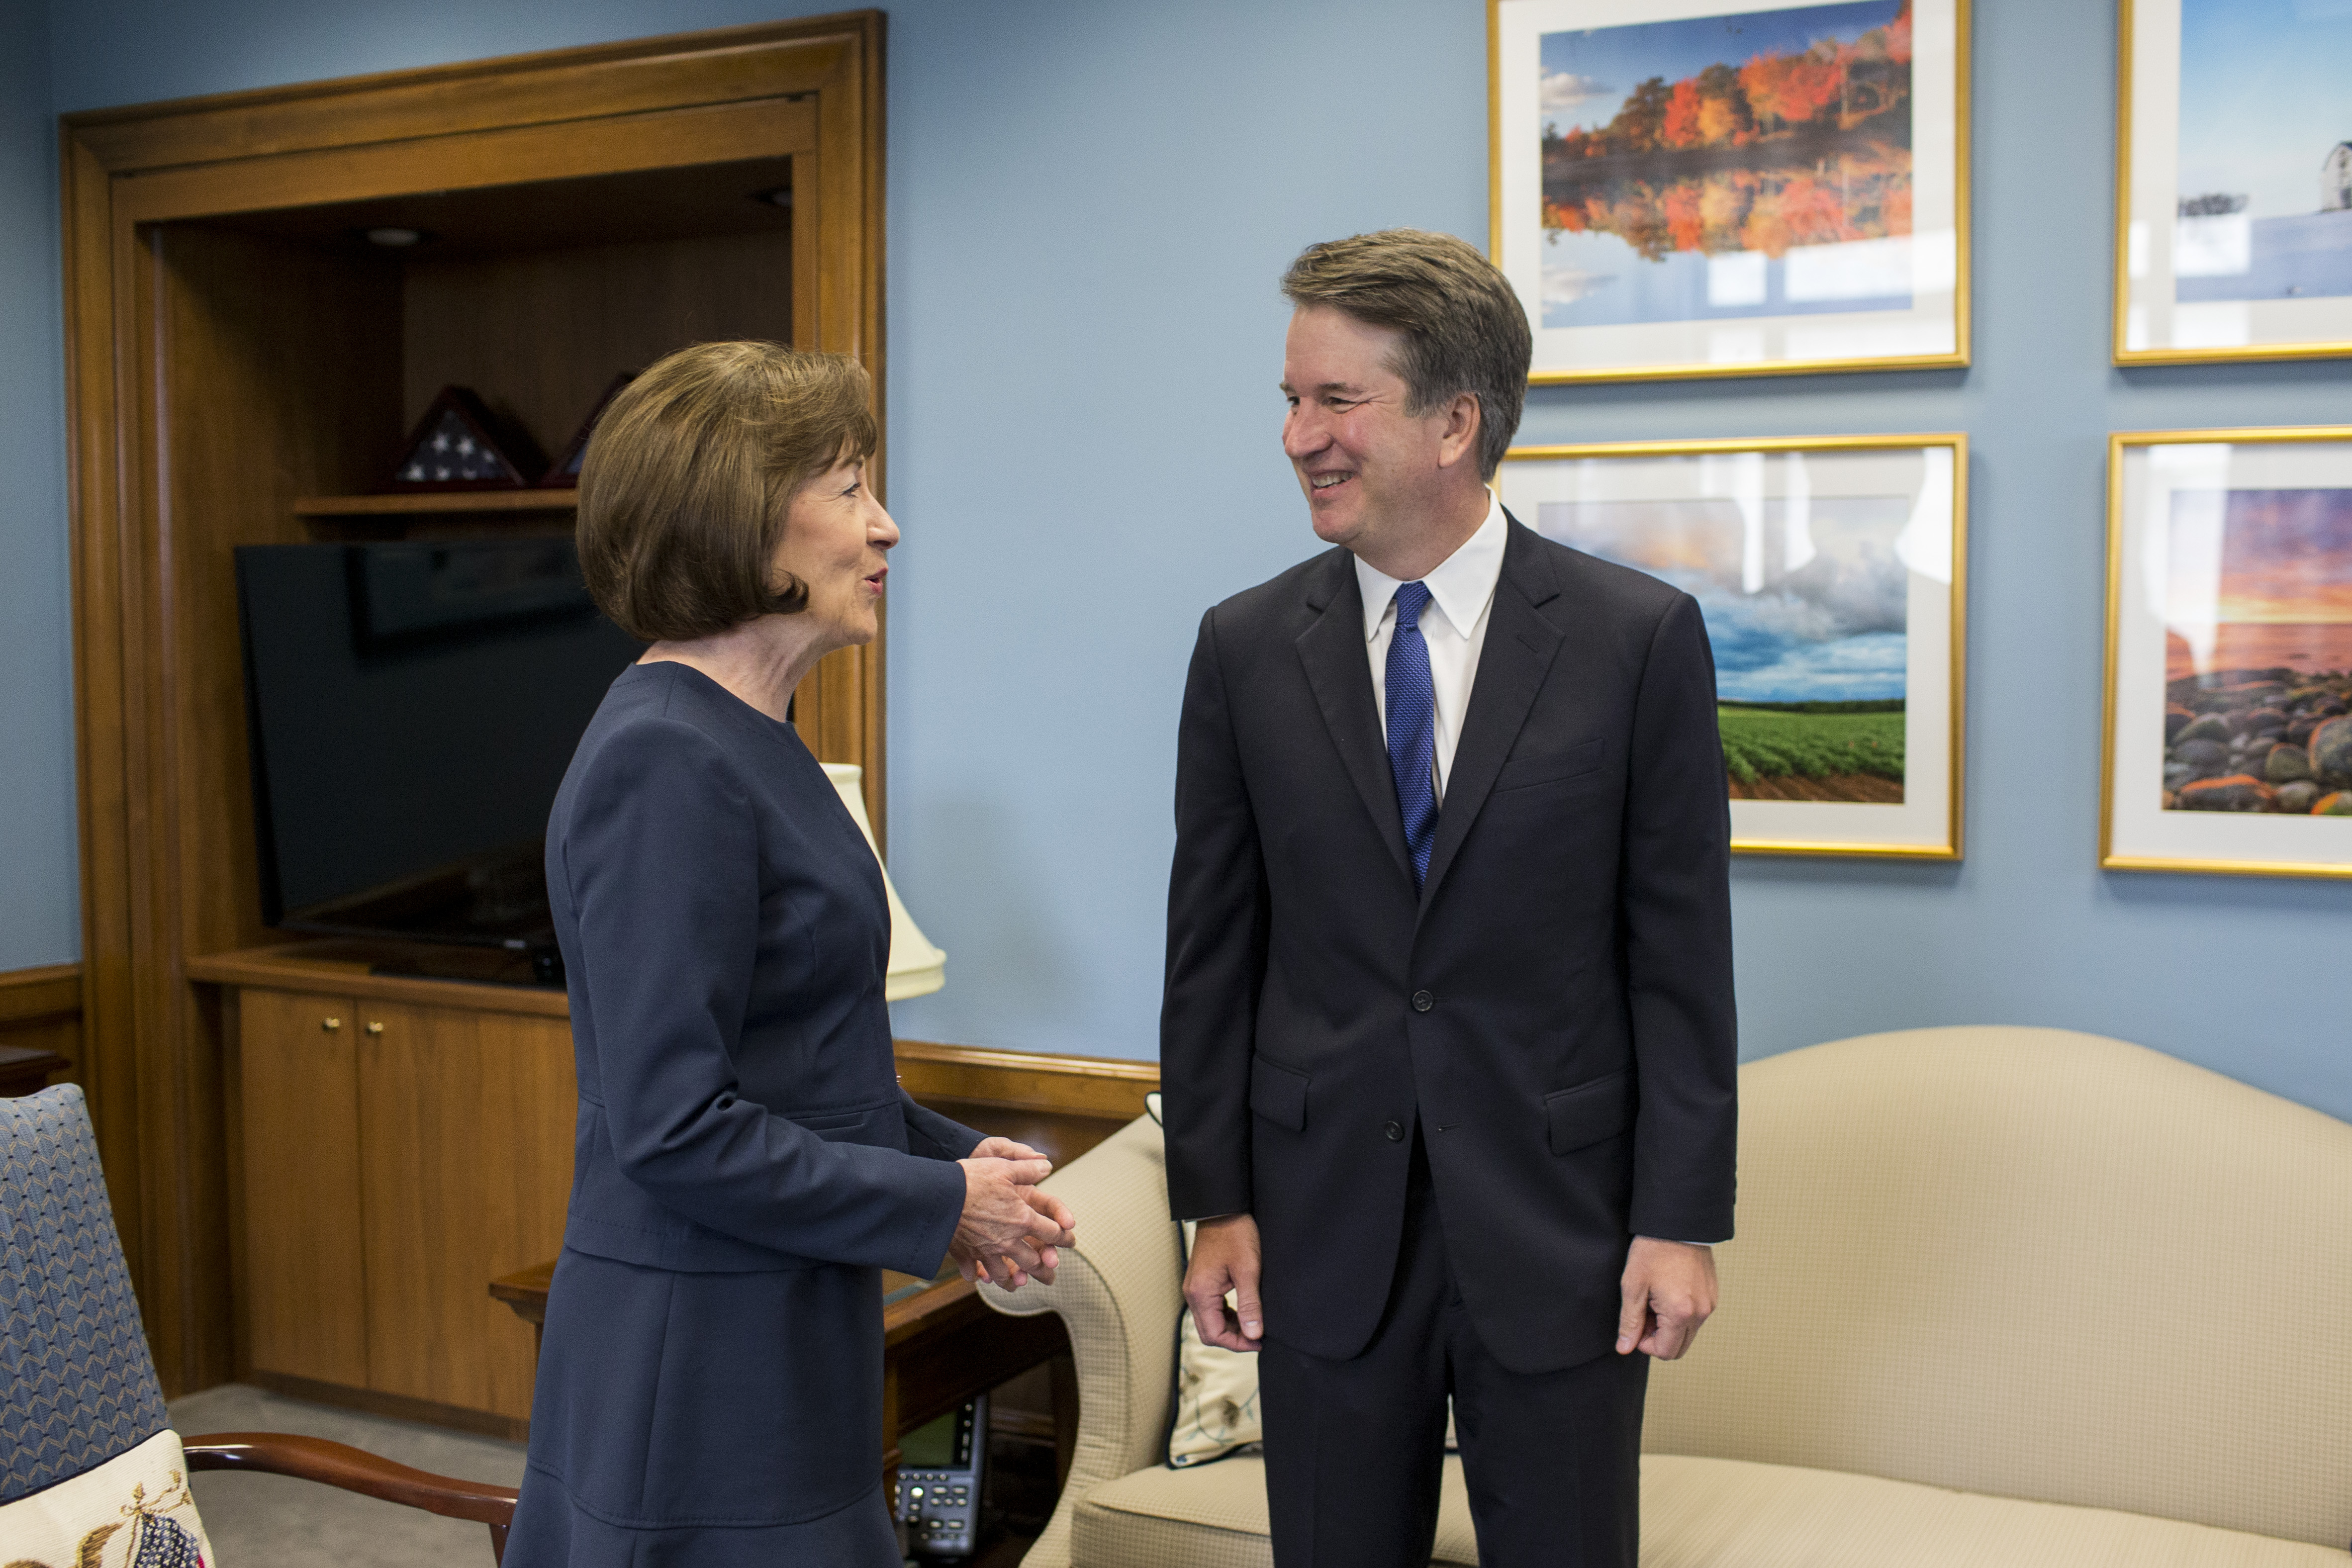 Supreme Court Nominee Brett Kavanaugh meets with Sen. Susan Collins (R-ME) in her office on Capitol Hill on August 21, 2018 in Washington, DC.